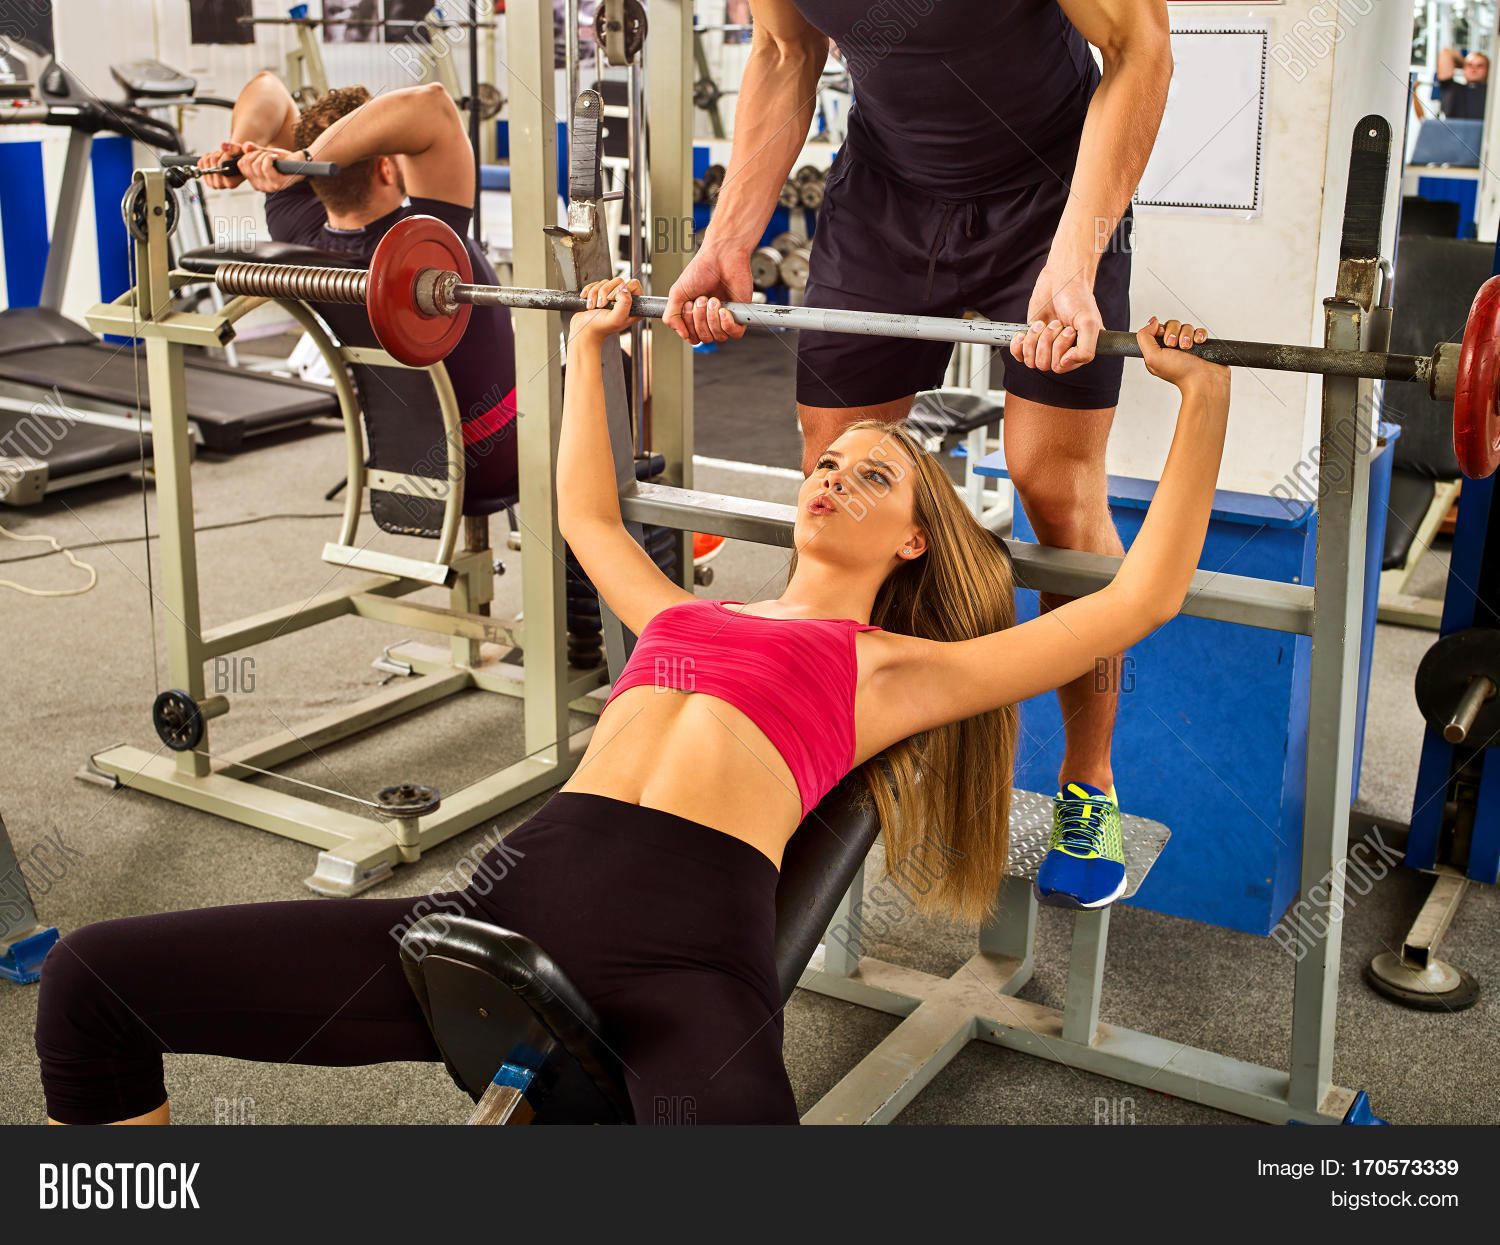 fitness friends workout gym woman image photo bigstock. Black Bedroom Furniture Sets. Home Design Ideas